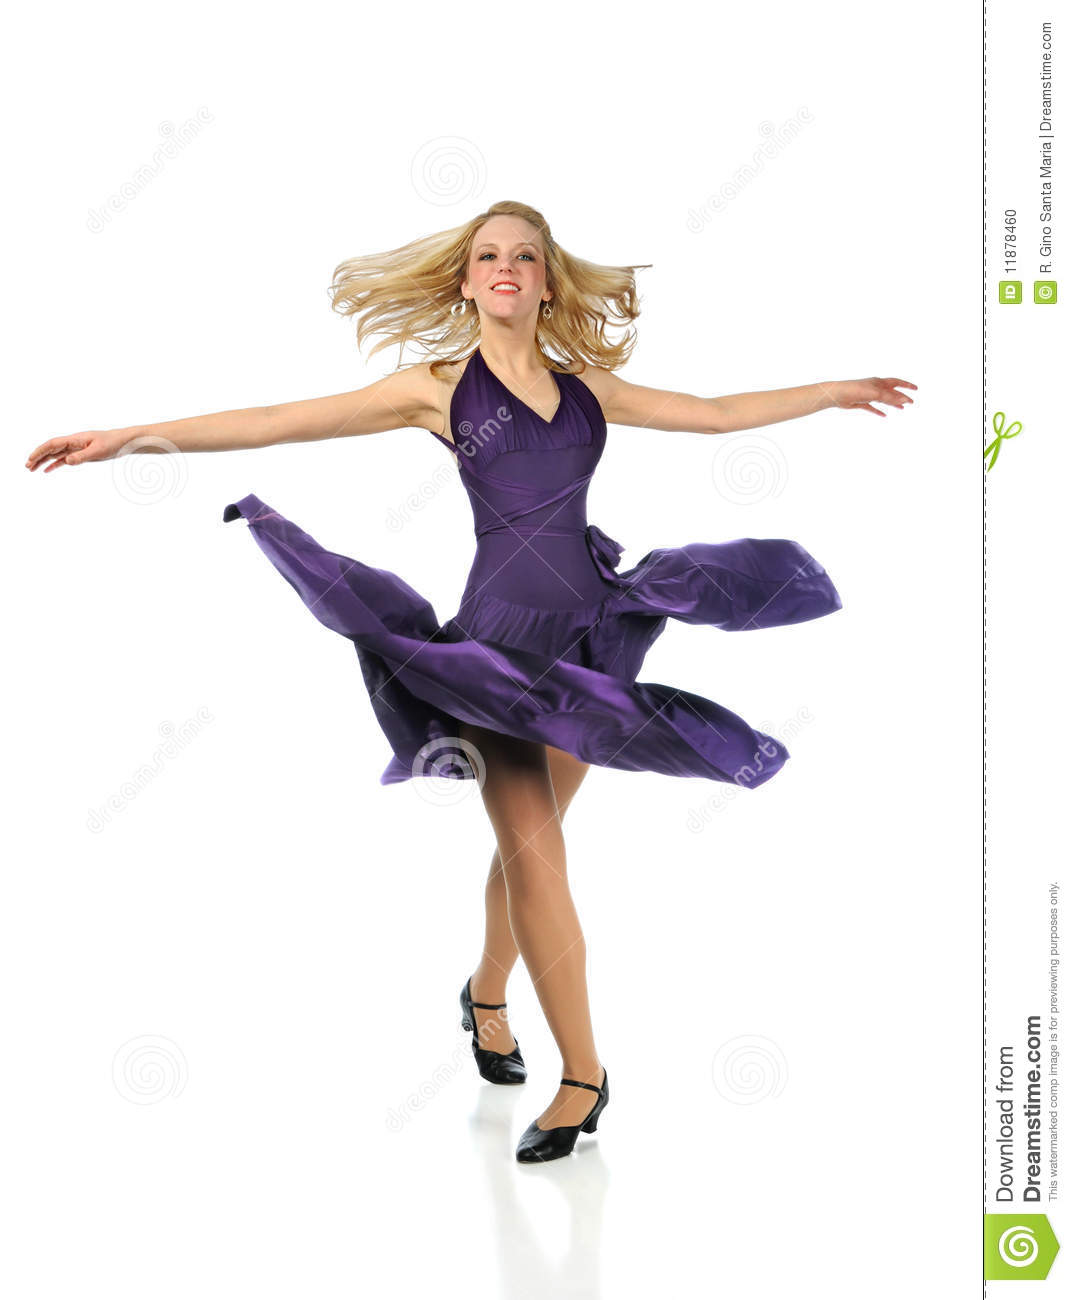 Woman dancing wearing purple dress isolated over white background